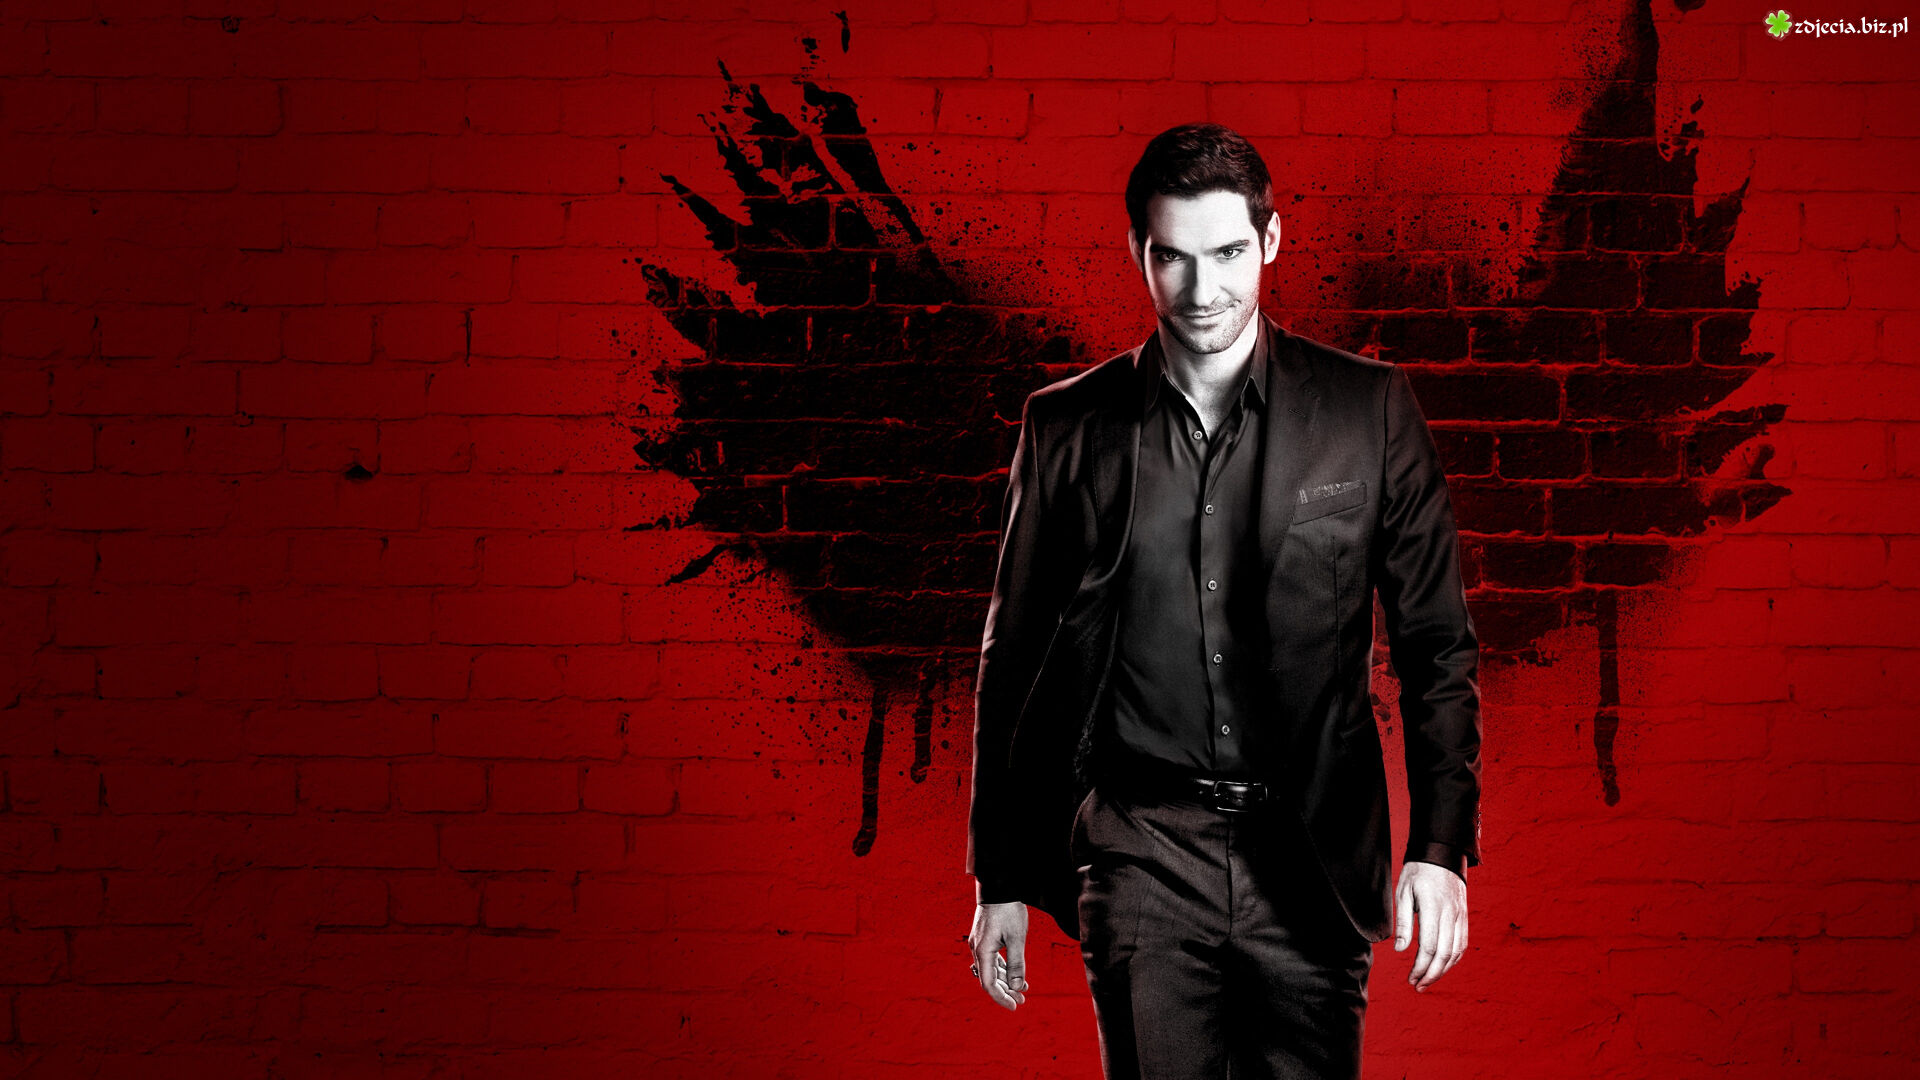 Serial, Lucyfer, Lucifer, Aktor, Tom Ellis, Postać, Lucyfer Morningstar, Skrzydła